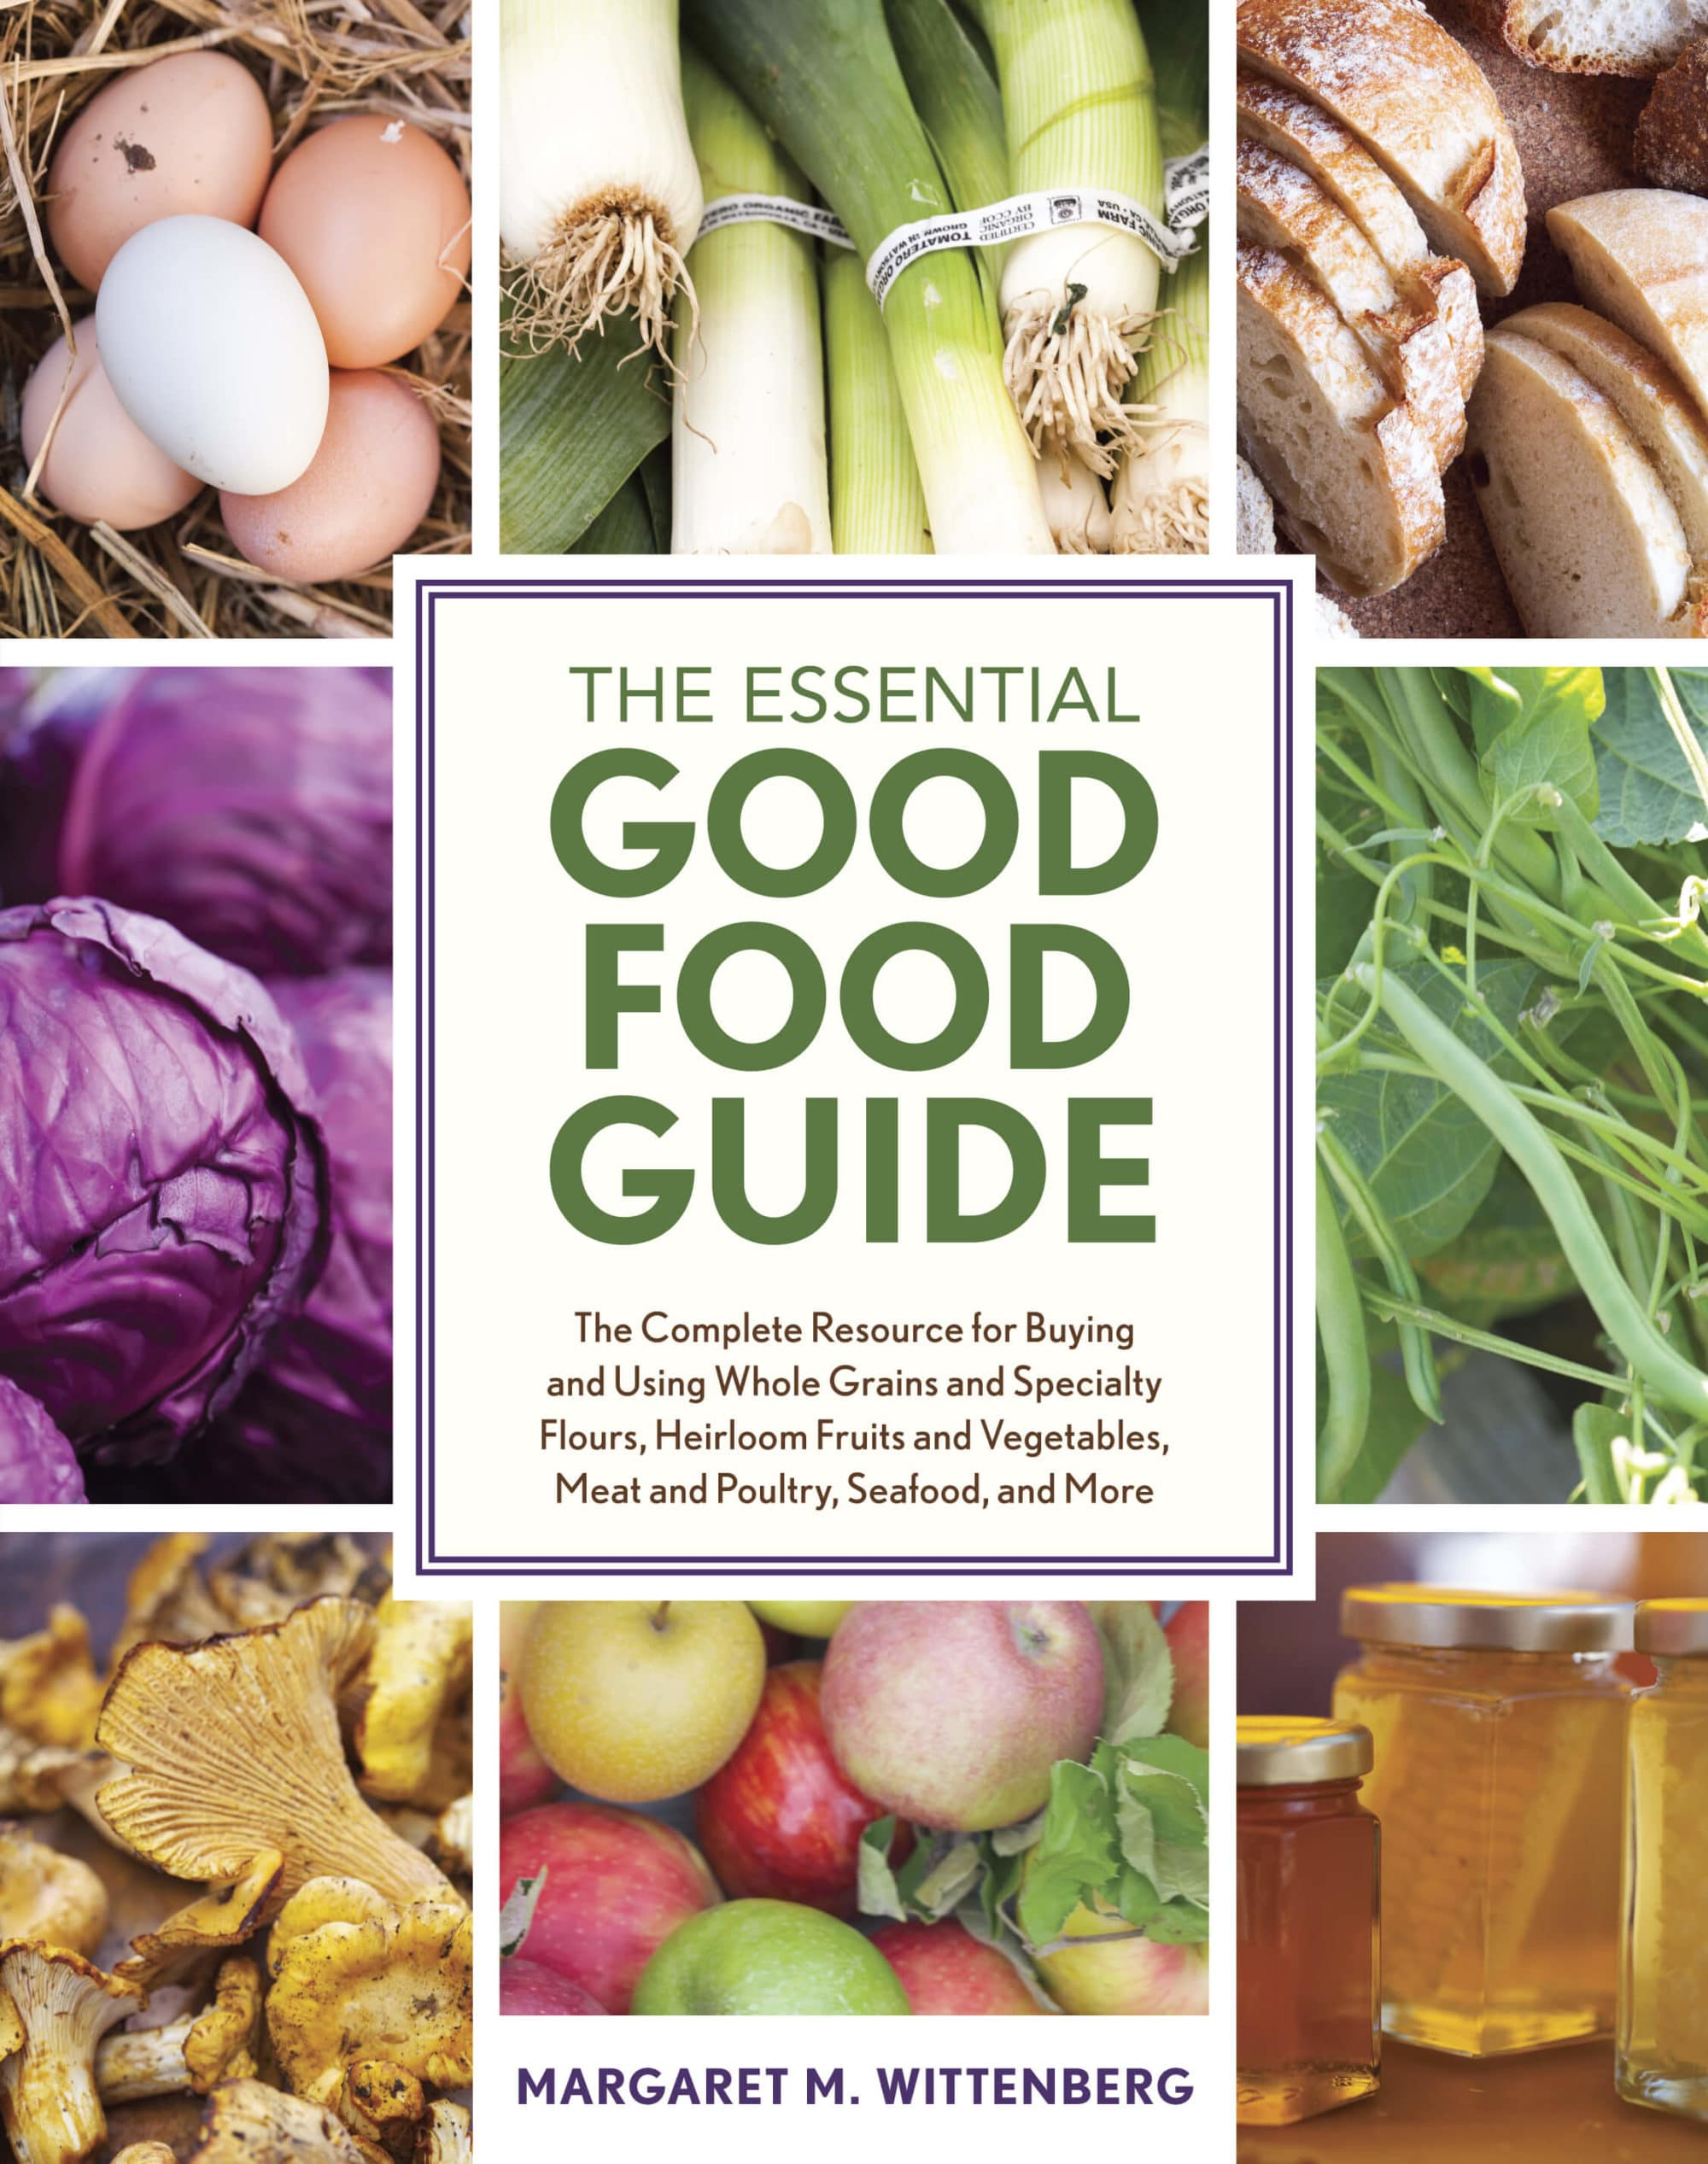 The Essential Good Food Guide Book Review